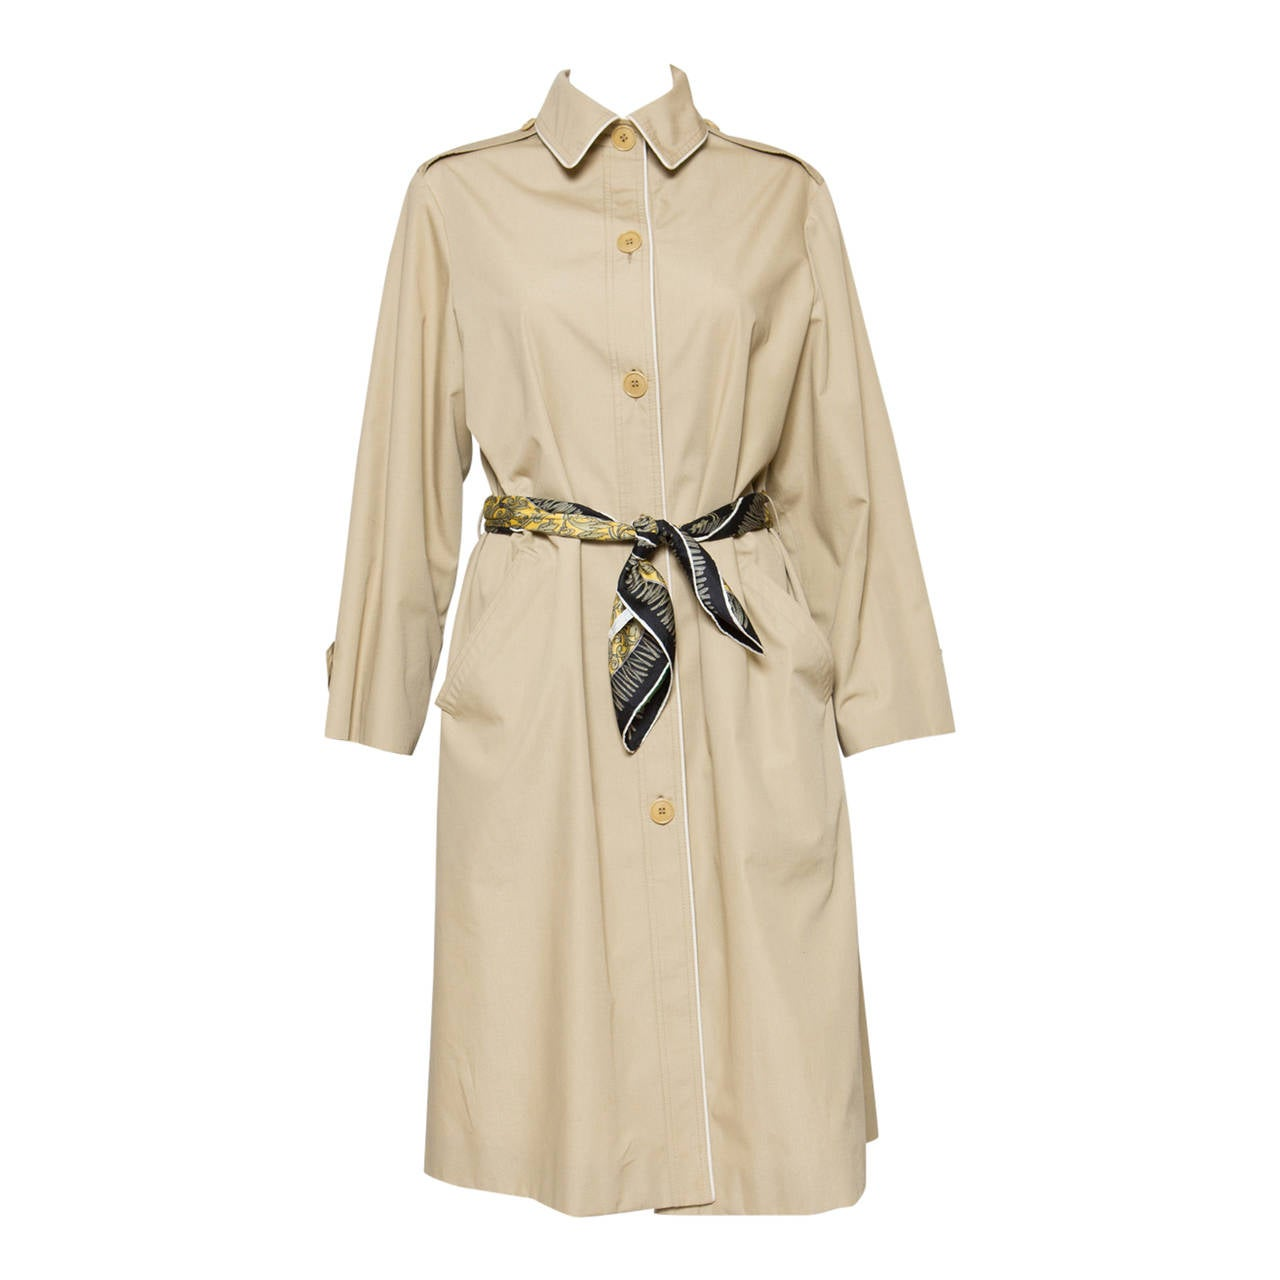 1975s Celine Camel Trench-Coat 1